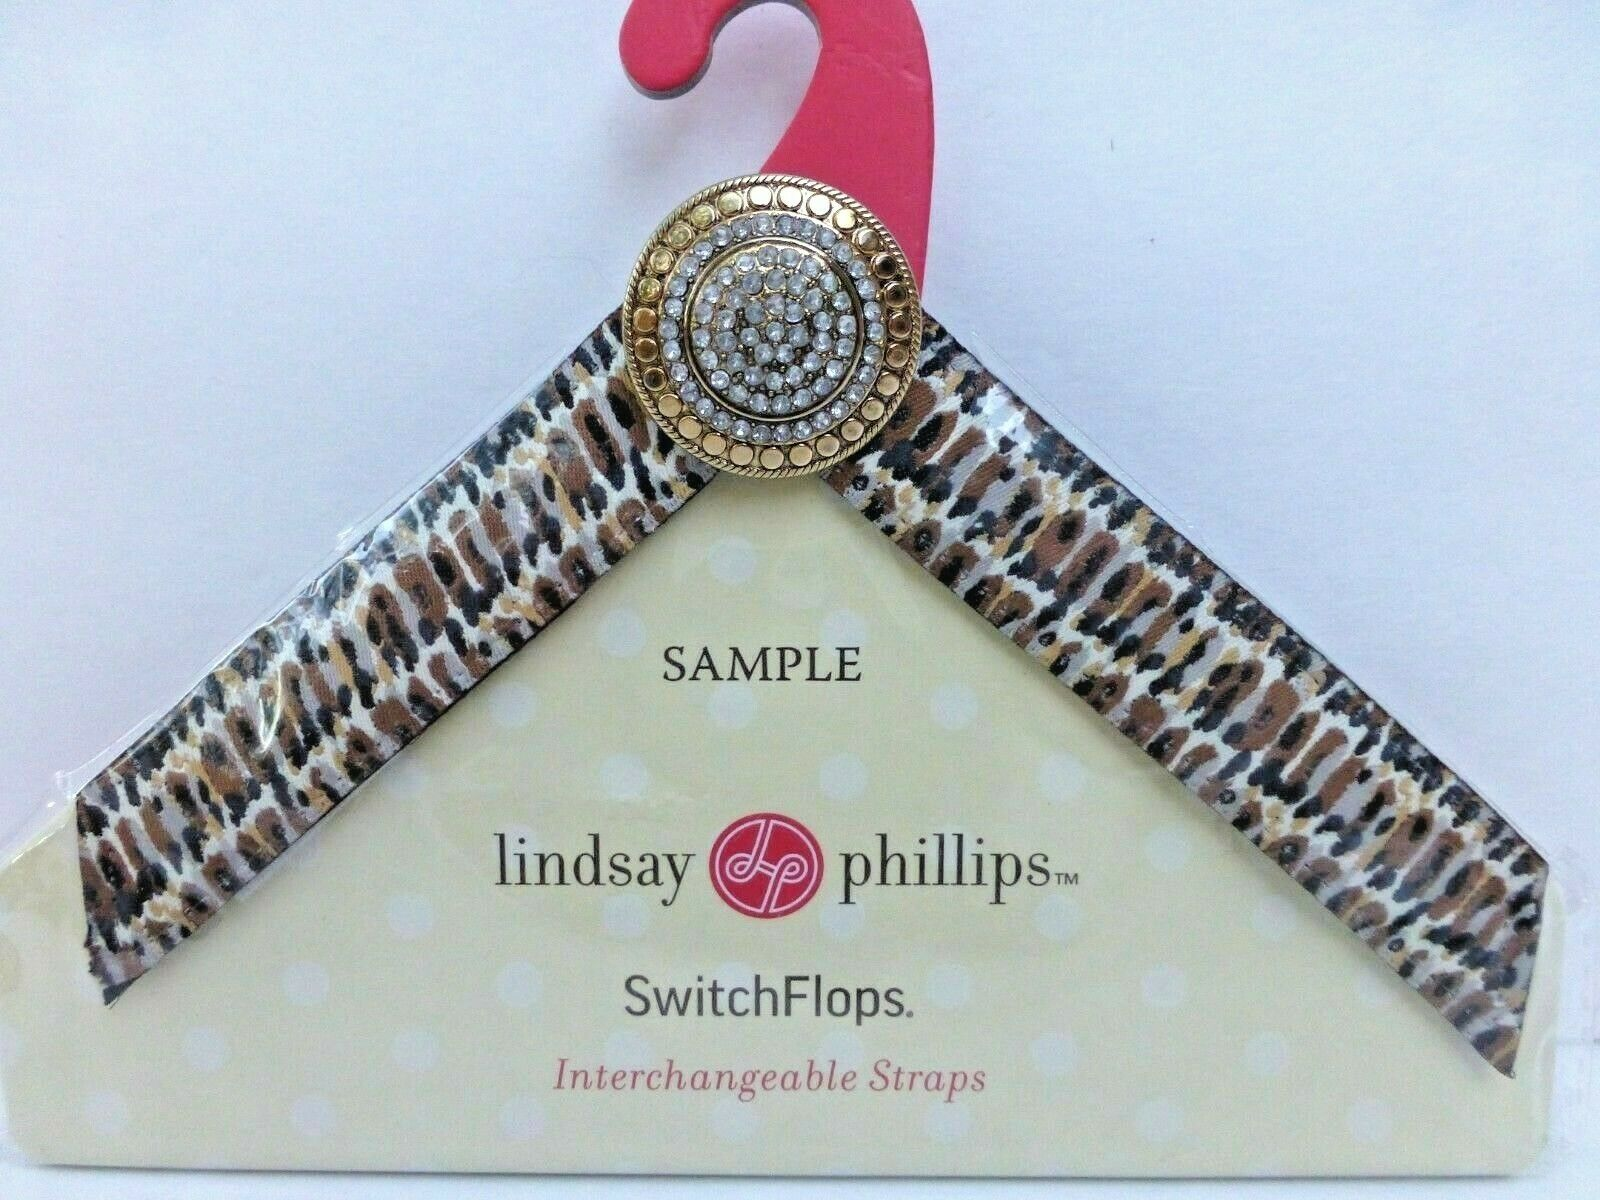 NEW Lindsay Phillips Isak straps small Switchflop set of 2 straps